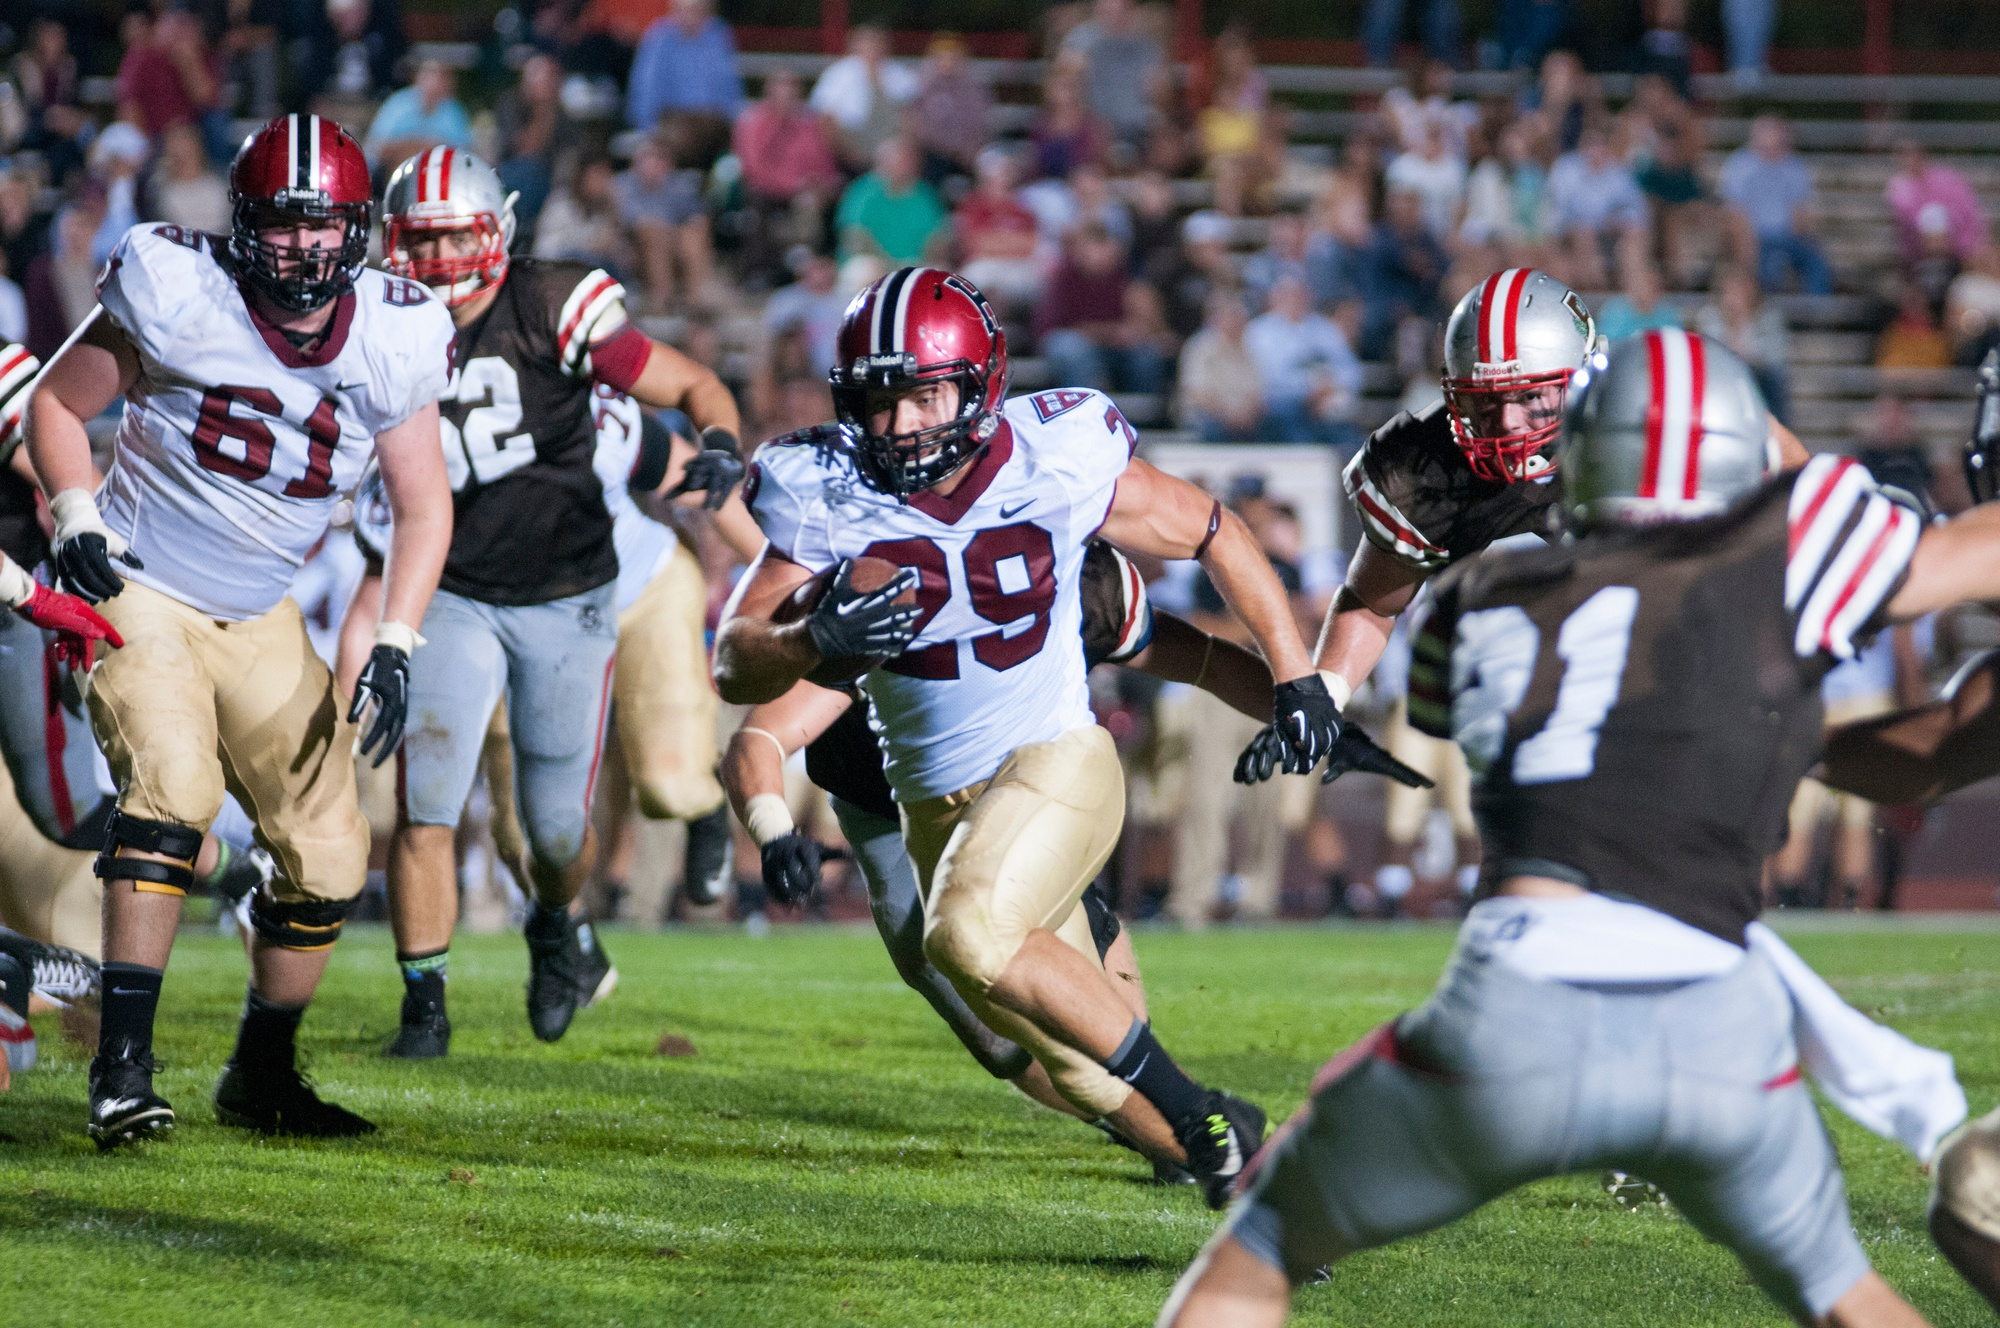 A 43-yard touchdown run marked the highlight of junior Paul Stanton's night as his squad took down Brown, 22-14.